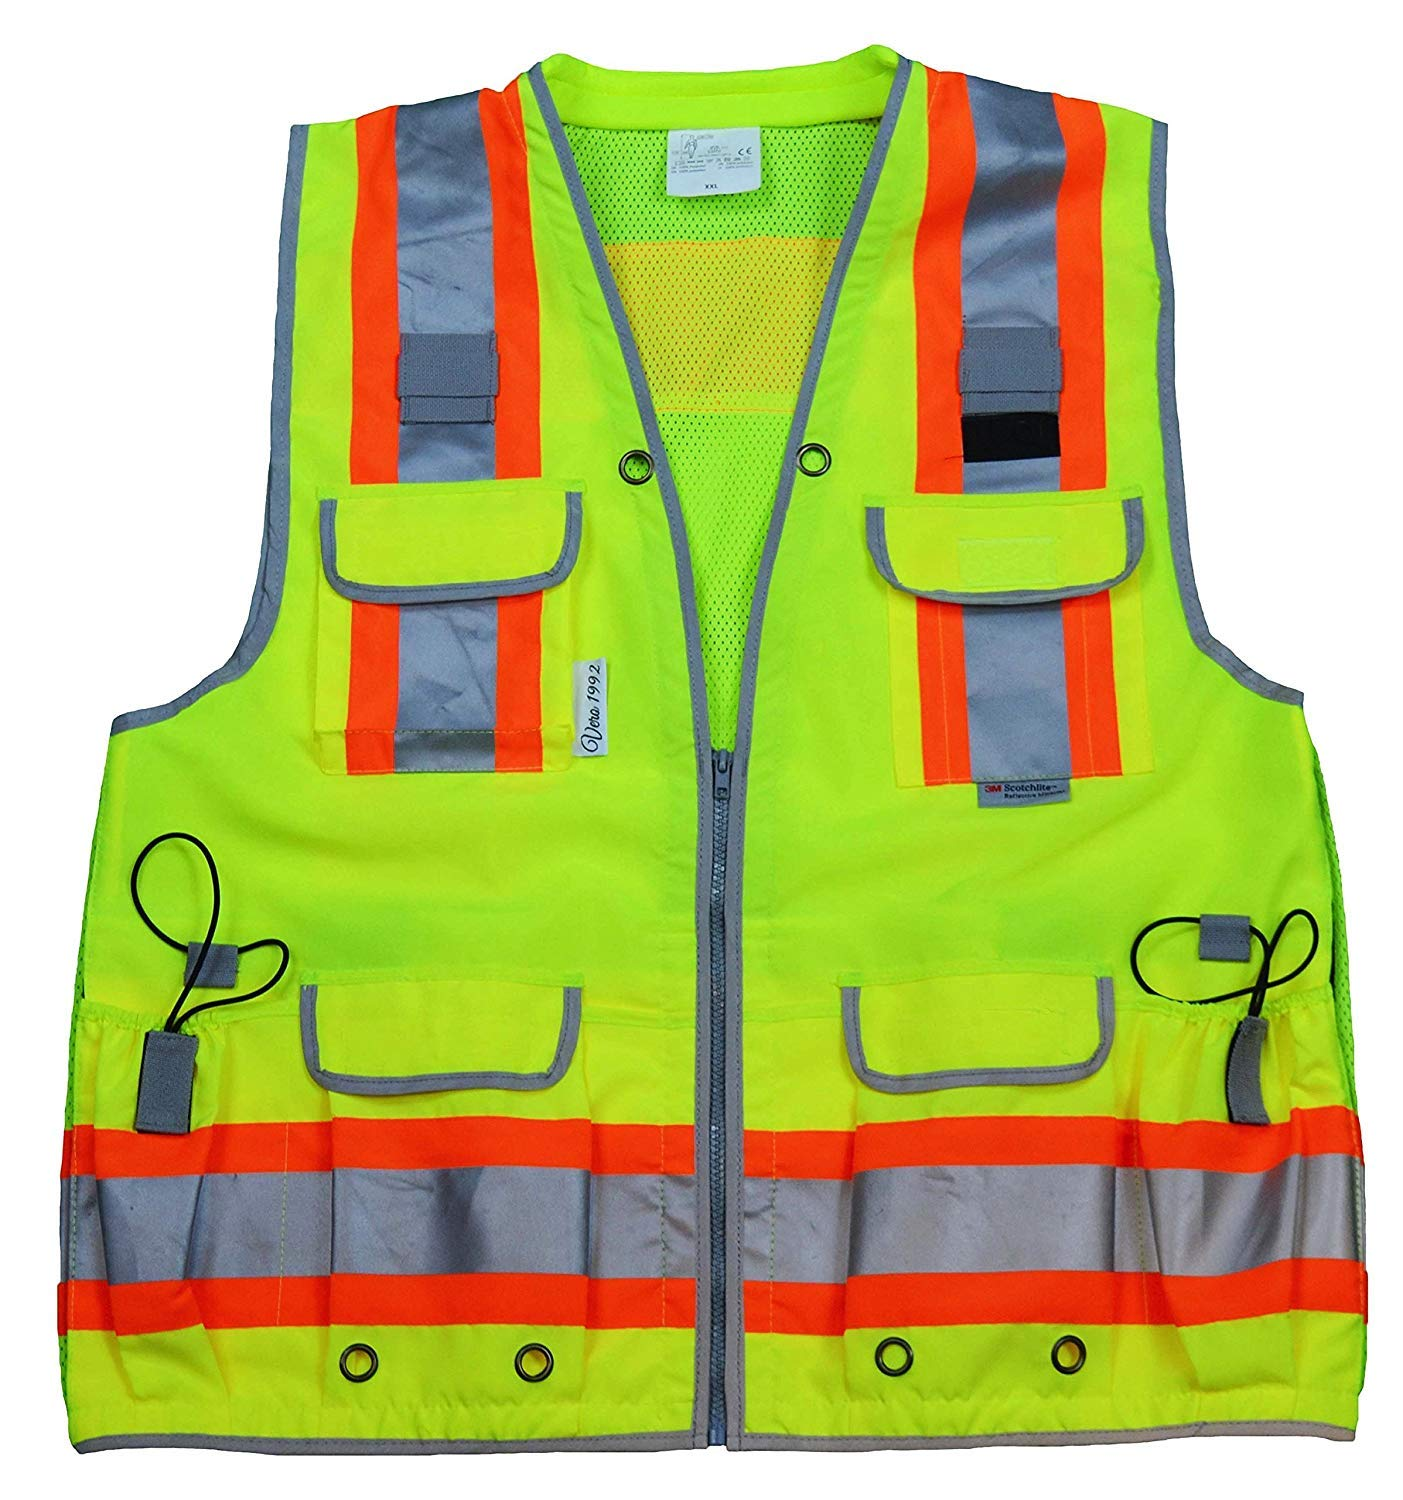 Radians Reflective Vest Class 2 Heavy Woven Two Tone Engineer Hi Viz Yellow Safety Vest 3M 8712 Tape (4X-Large, Yellow)